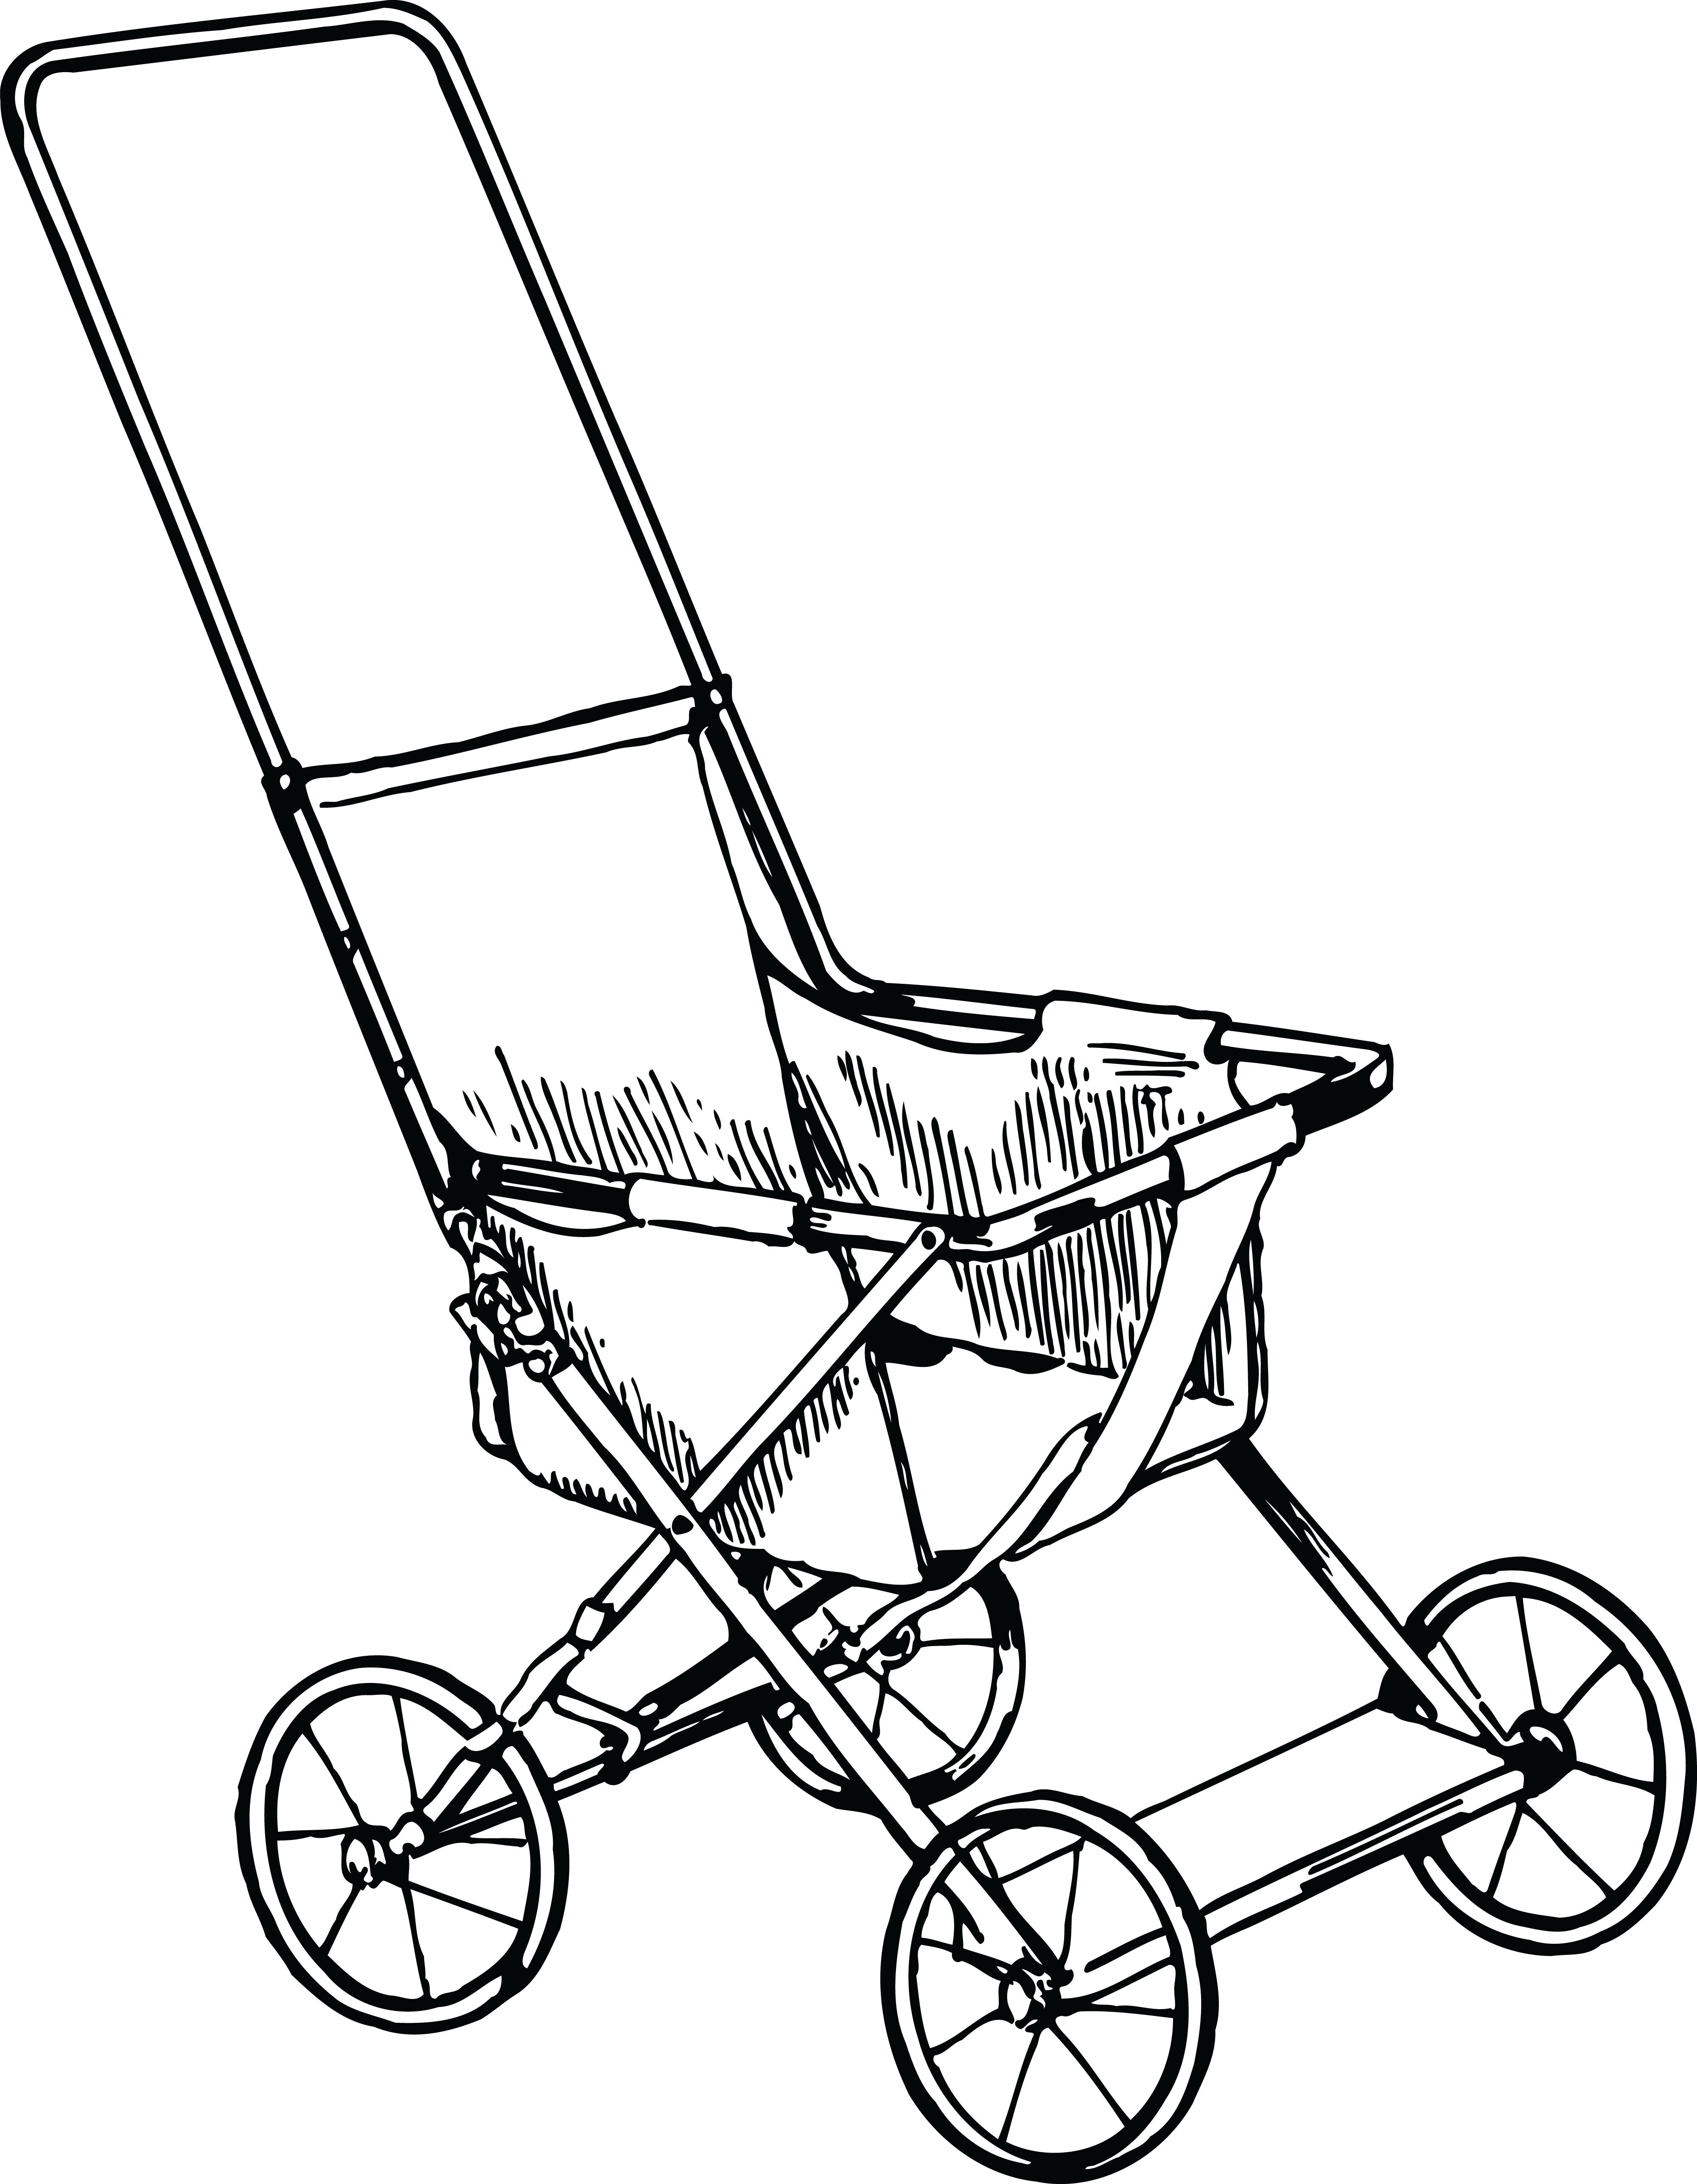 Stroller clipart black and white clip transparent download Stroller clipart black and white 2 » Clipart Portal clip transparent download